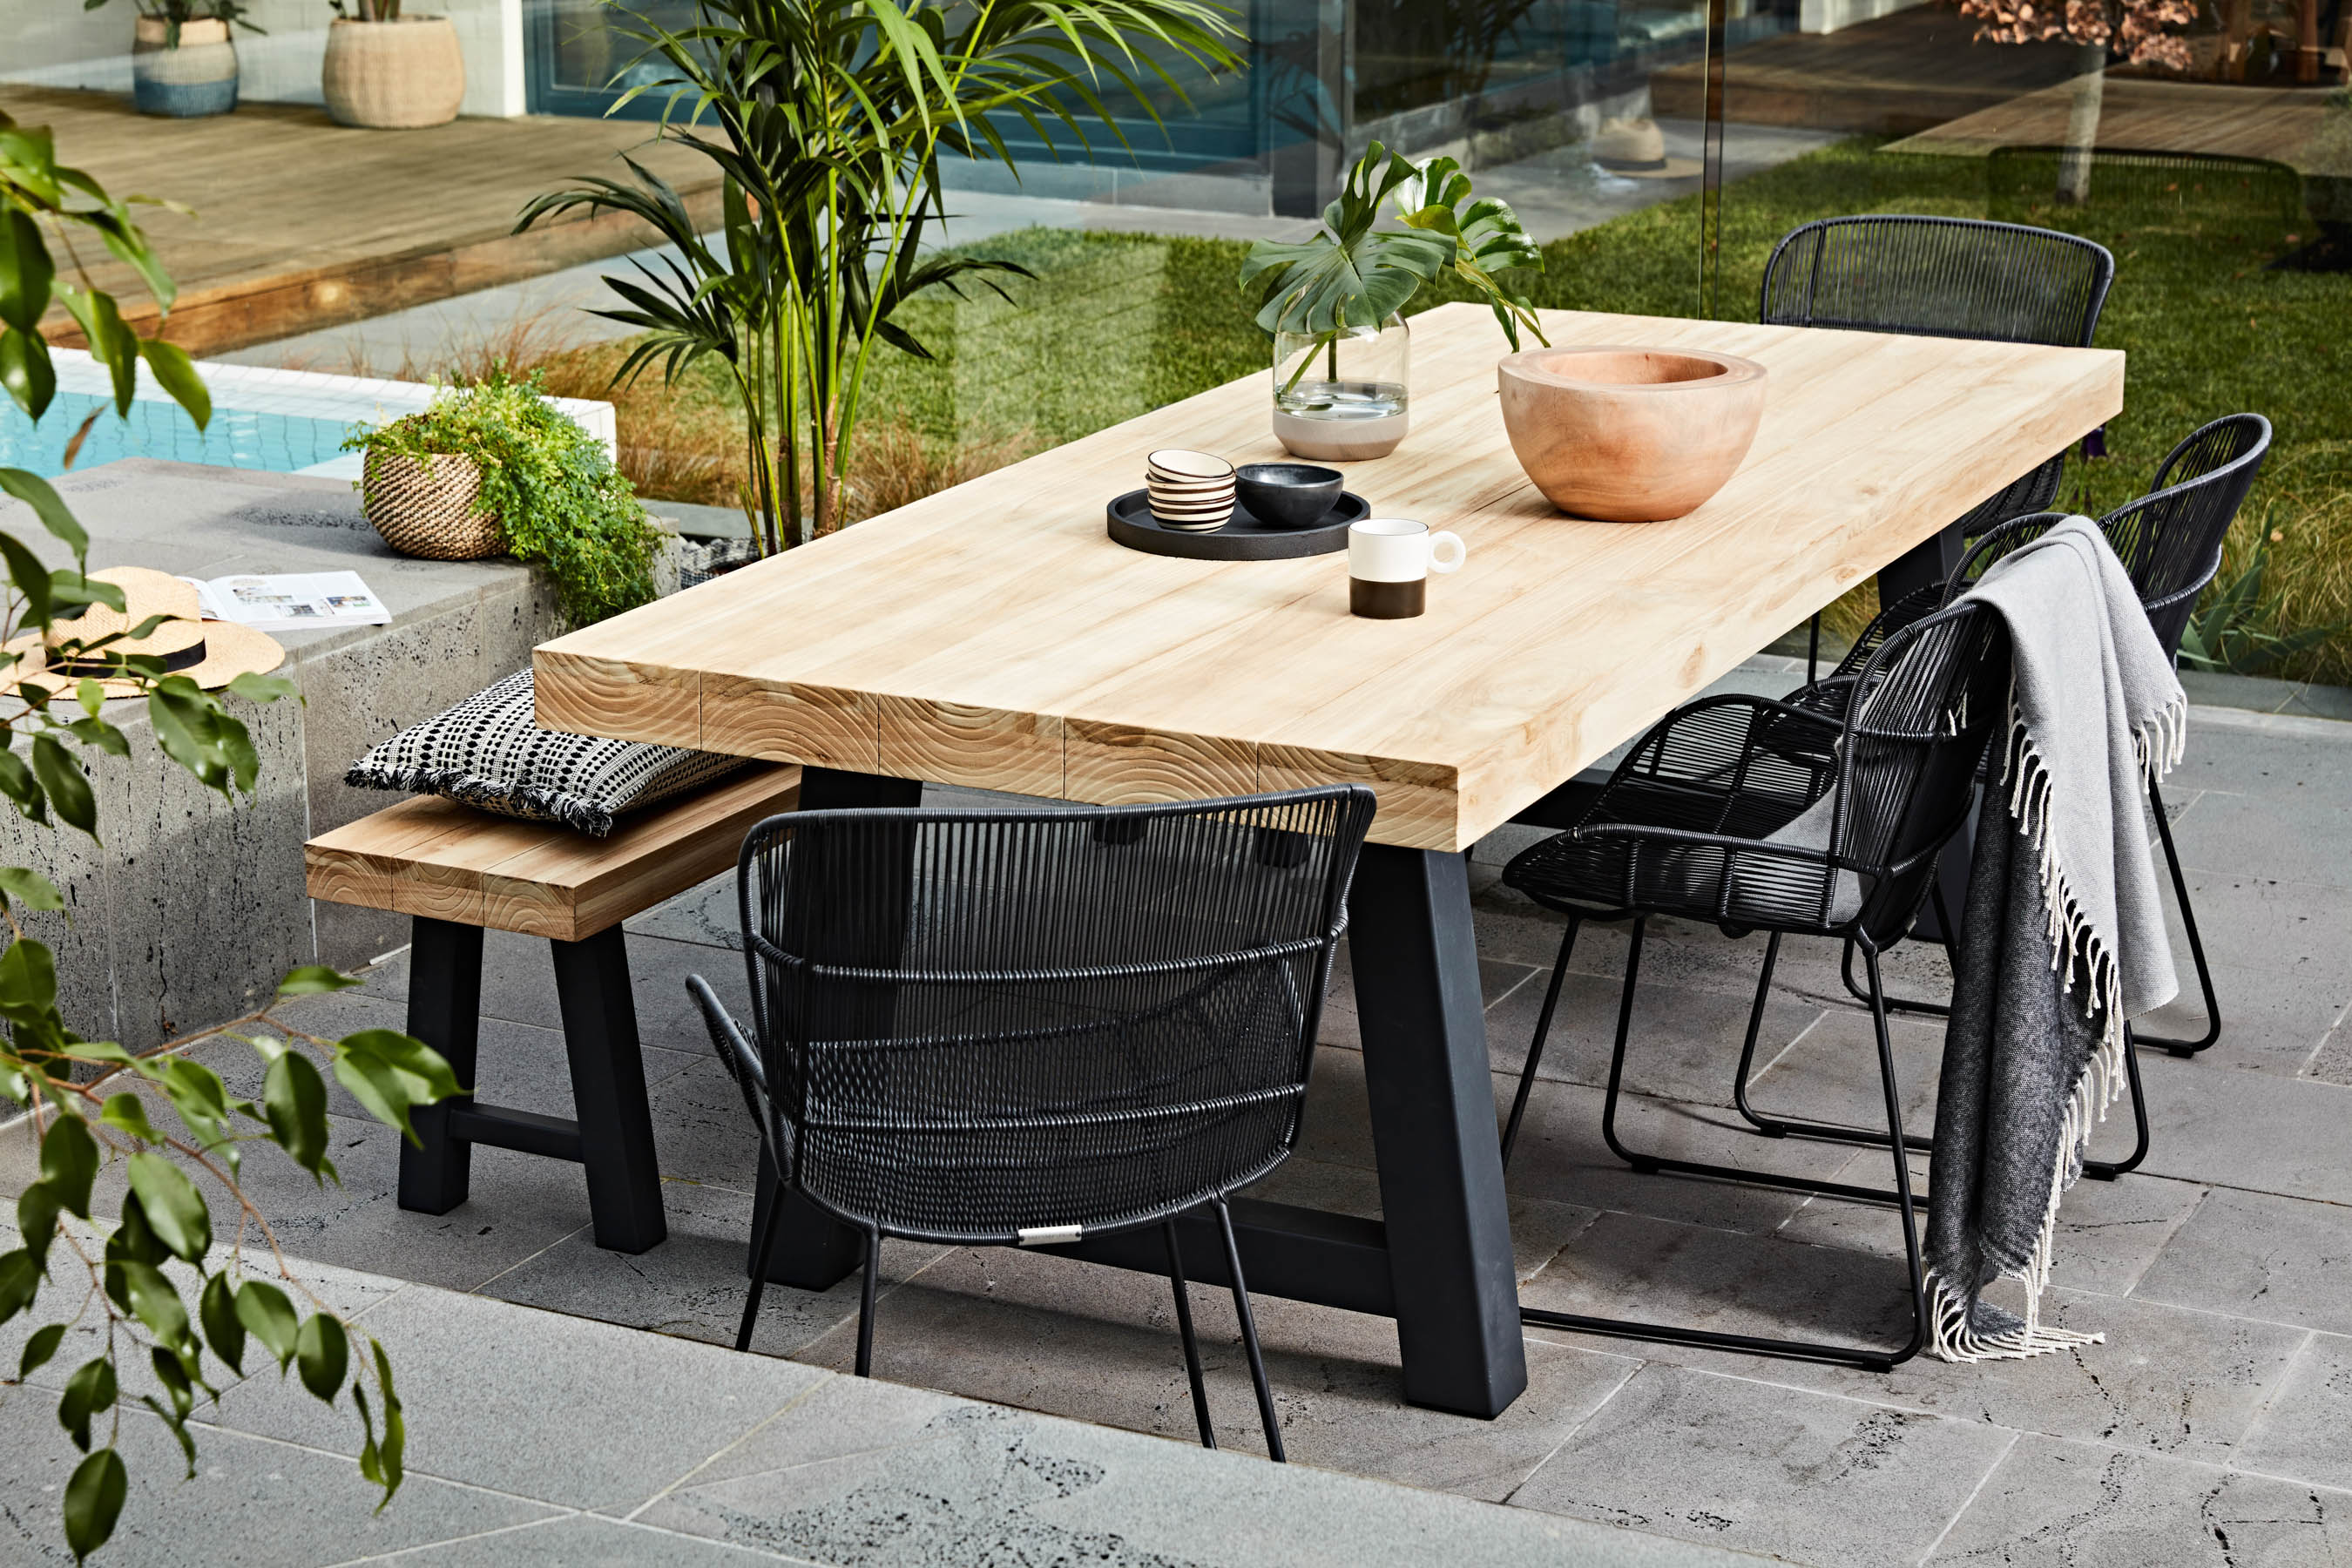 Furniture Gallery Dining-Chairs-Benches-Stools granada-beach-bench-01